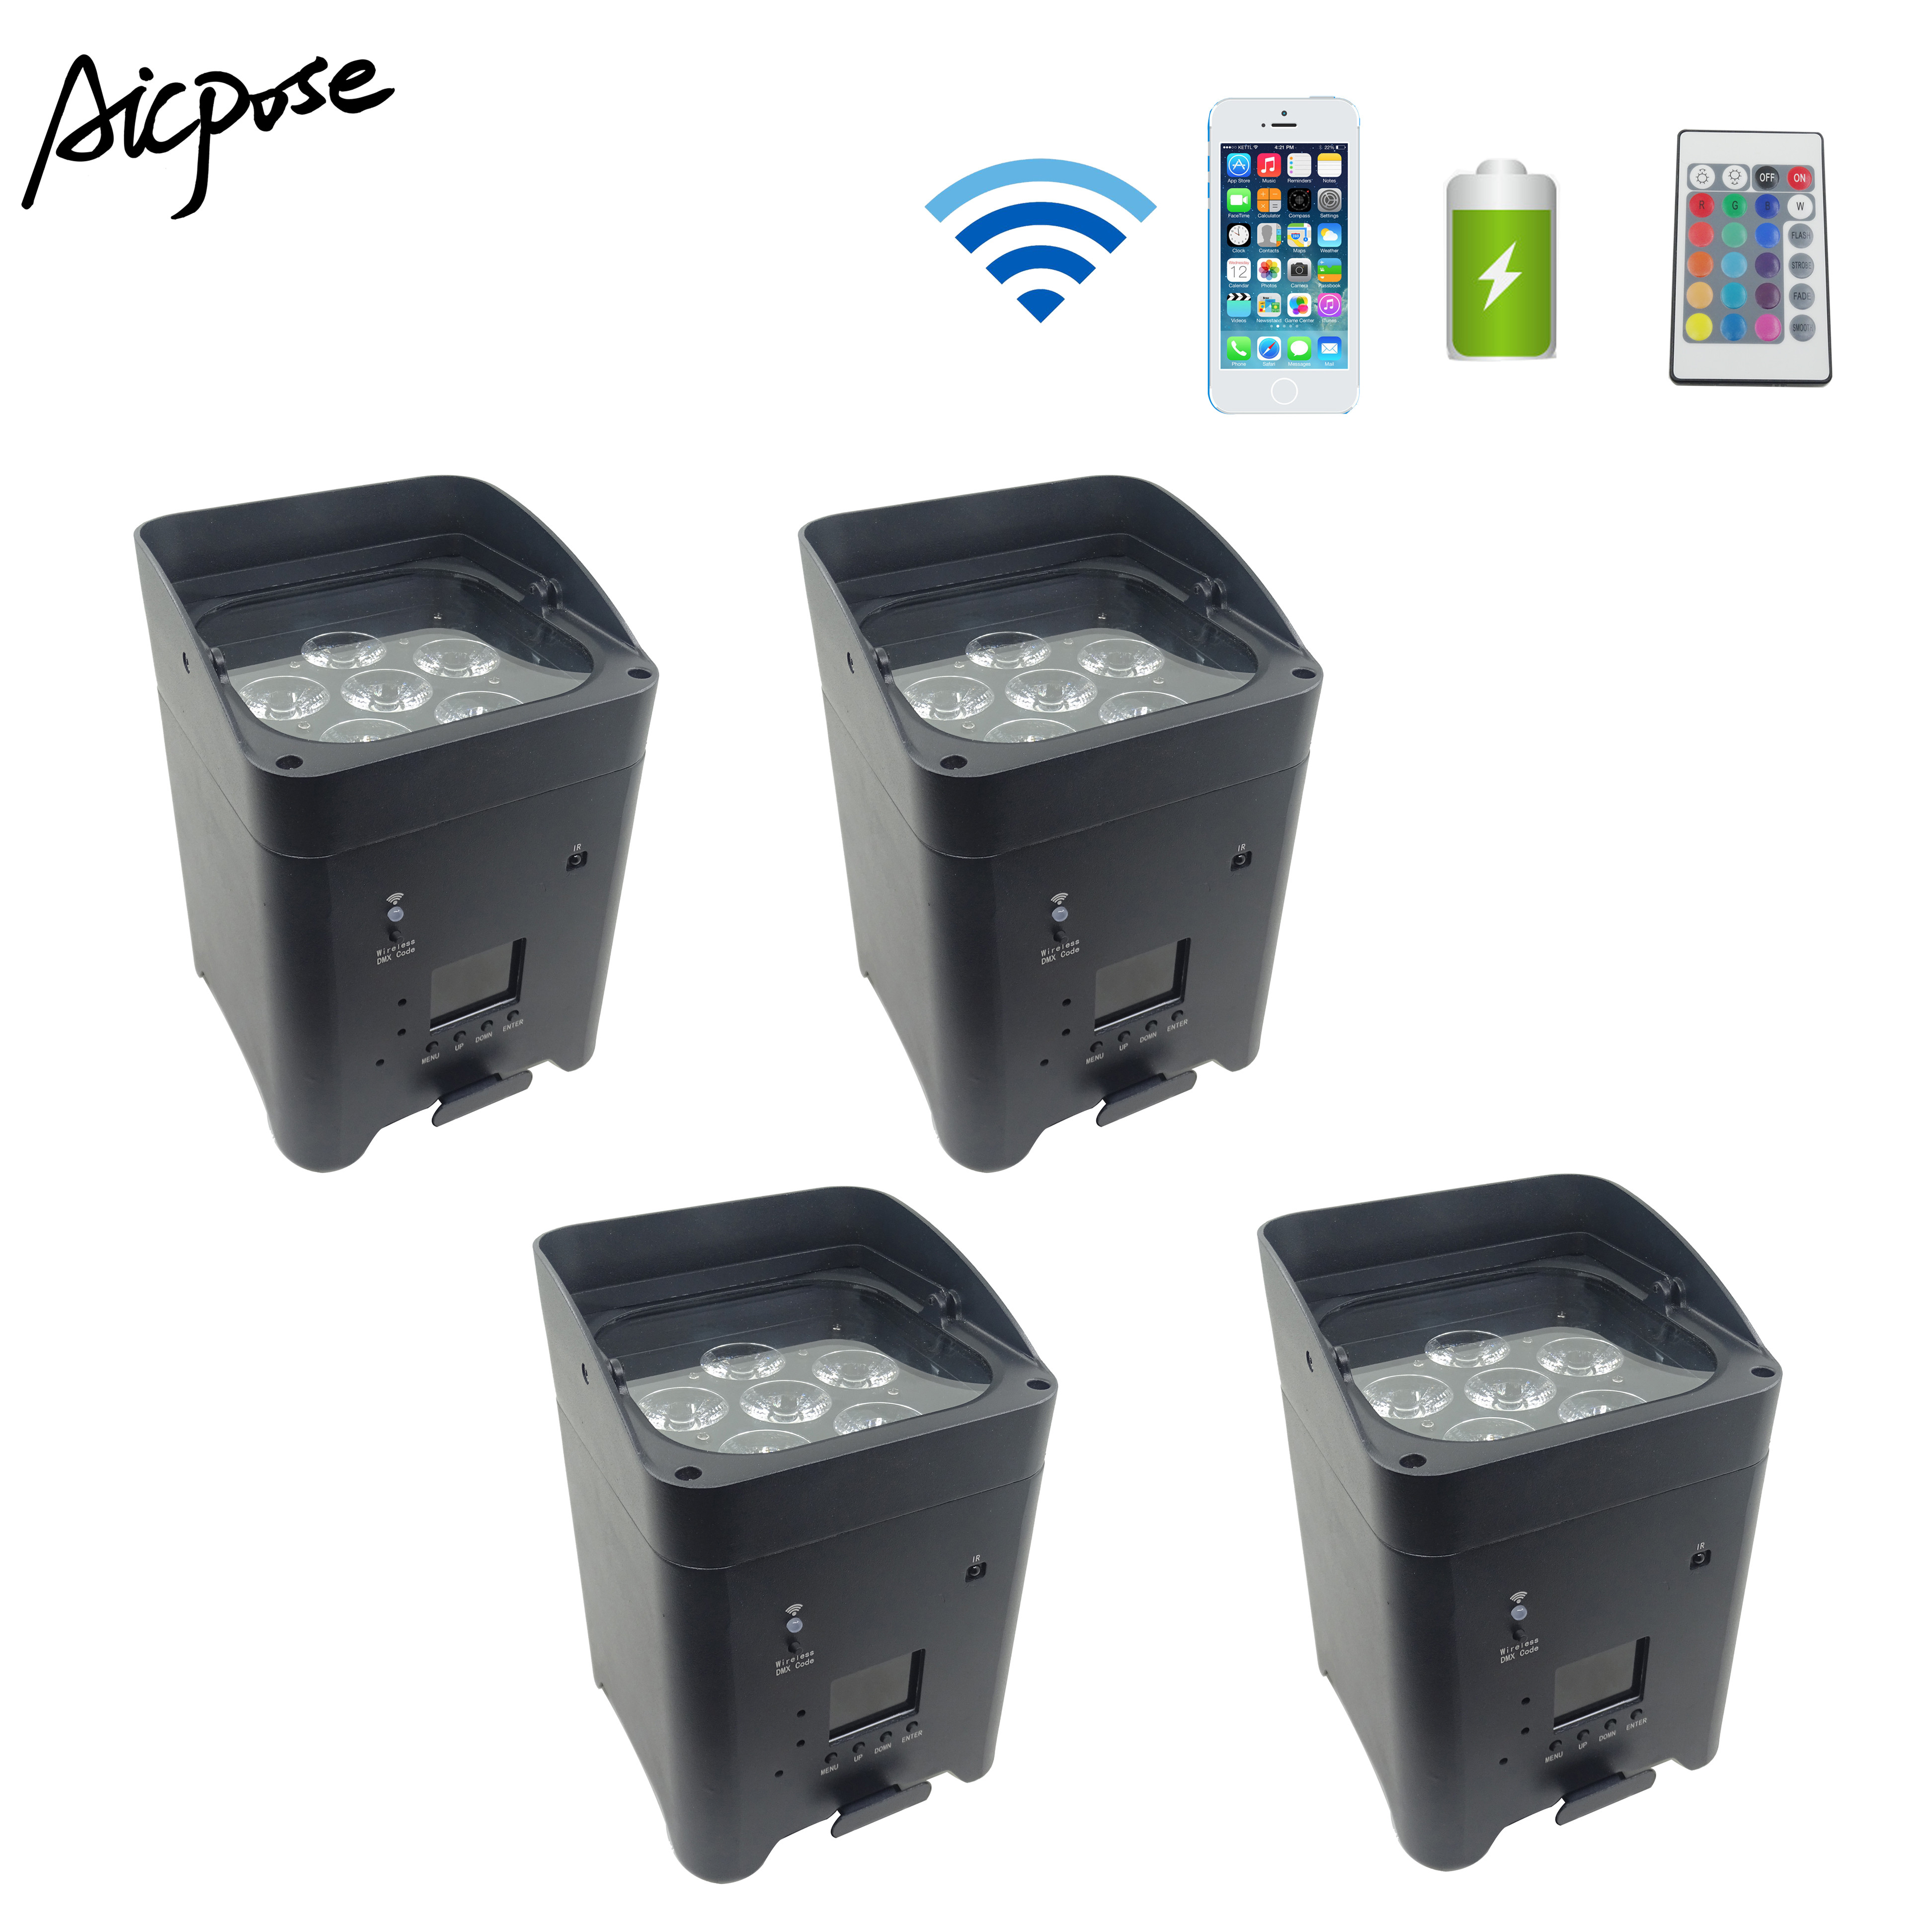 4pcs/lots 6*18w RGBWA UV Wireless Par Light Remote Control Battery Remote Wifi Control Outdoor Stage Lights Wedding Up Lights